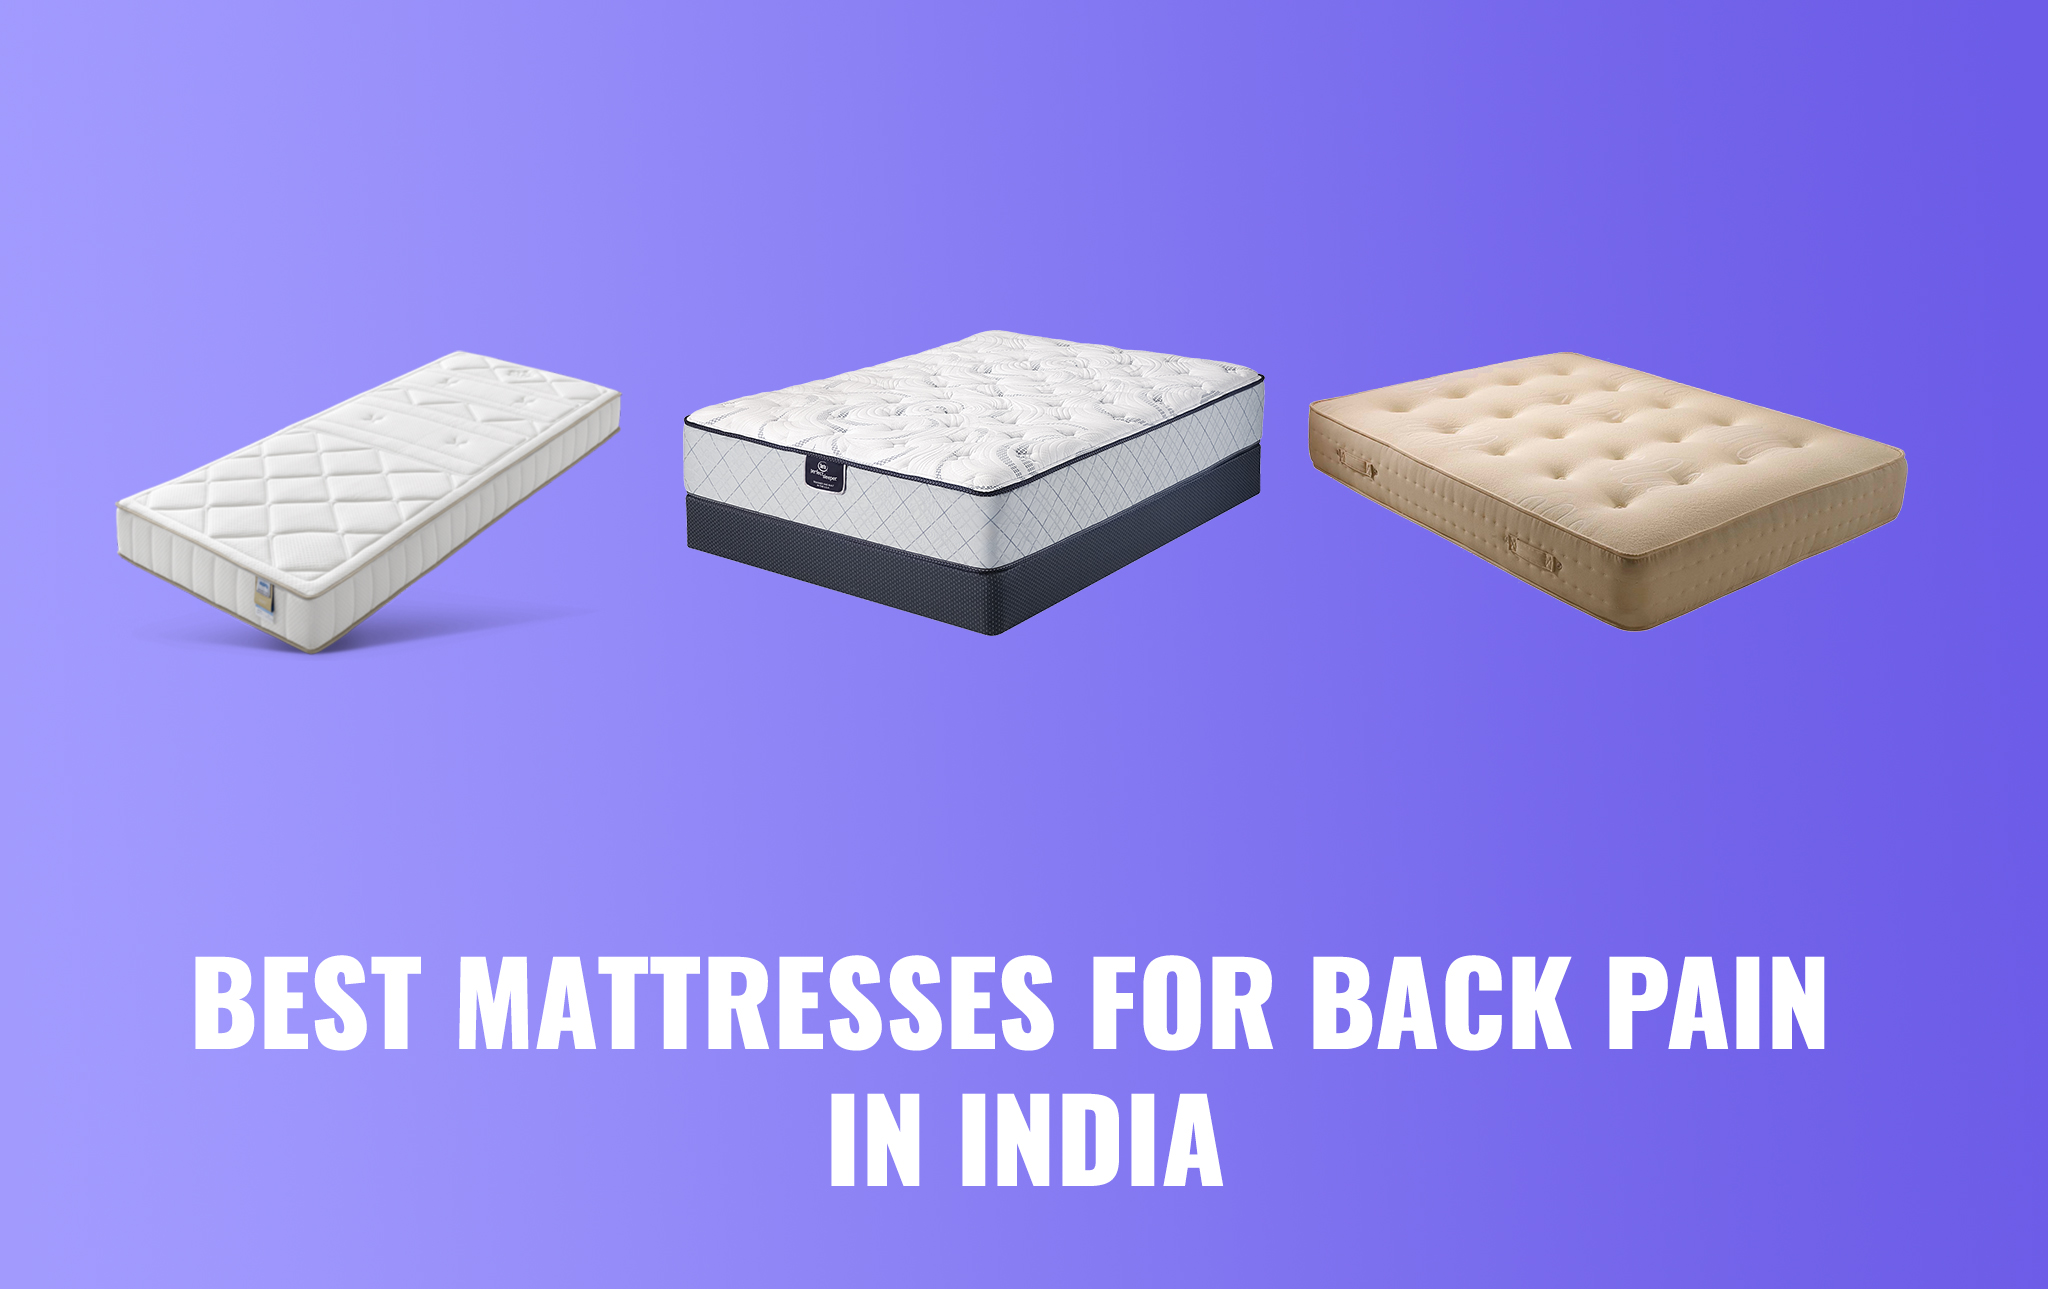 Best Mattresses for Back Pain in India